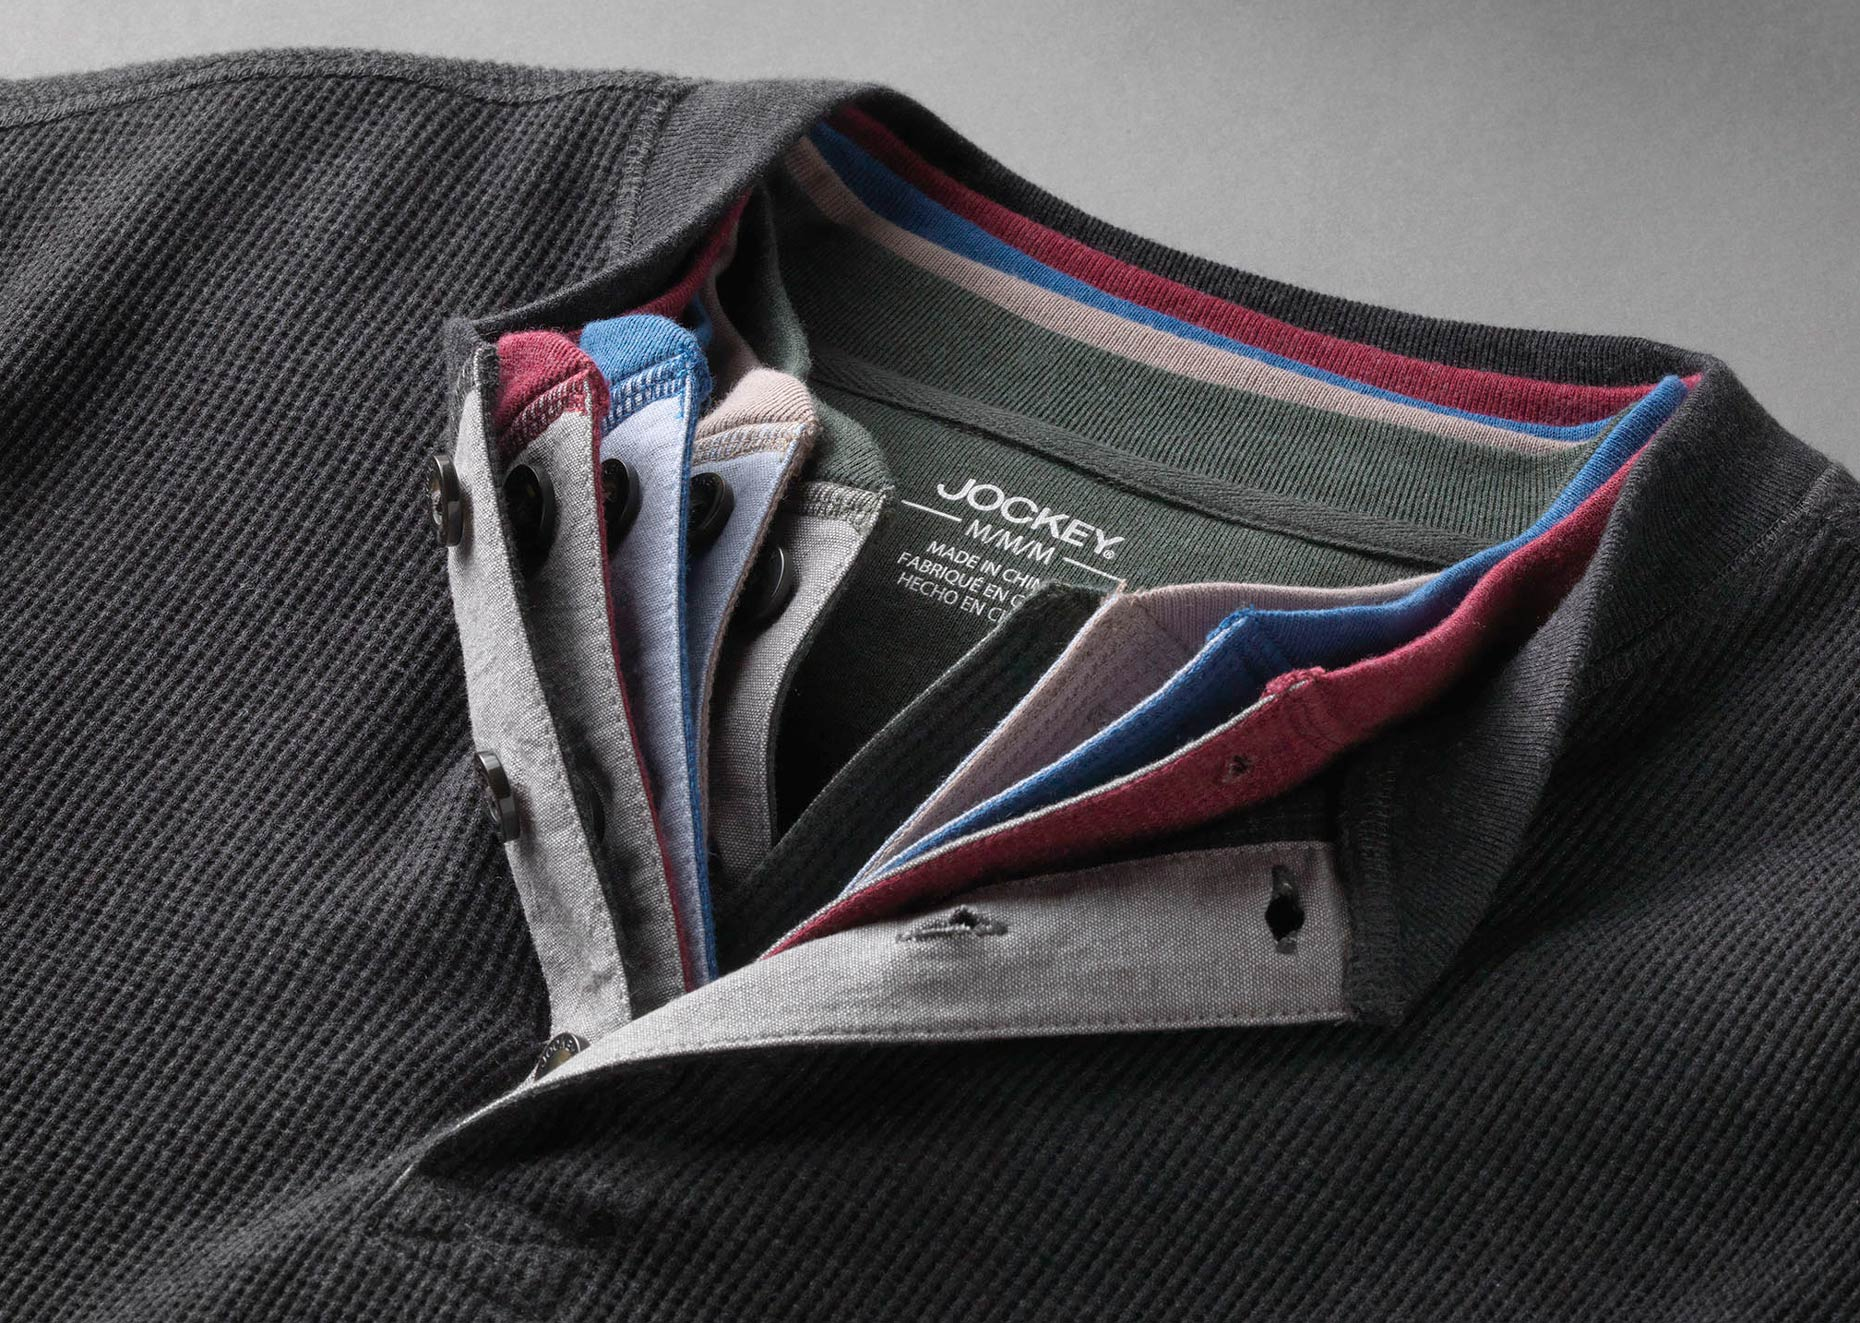 menswear-fabric-detail-jockey-tabletop